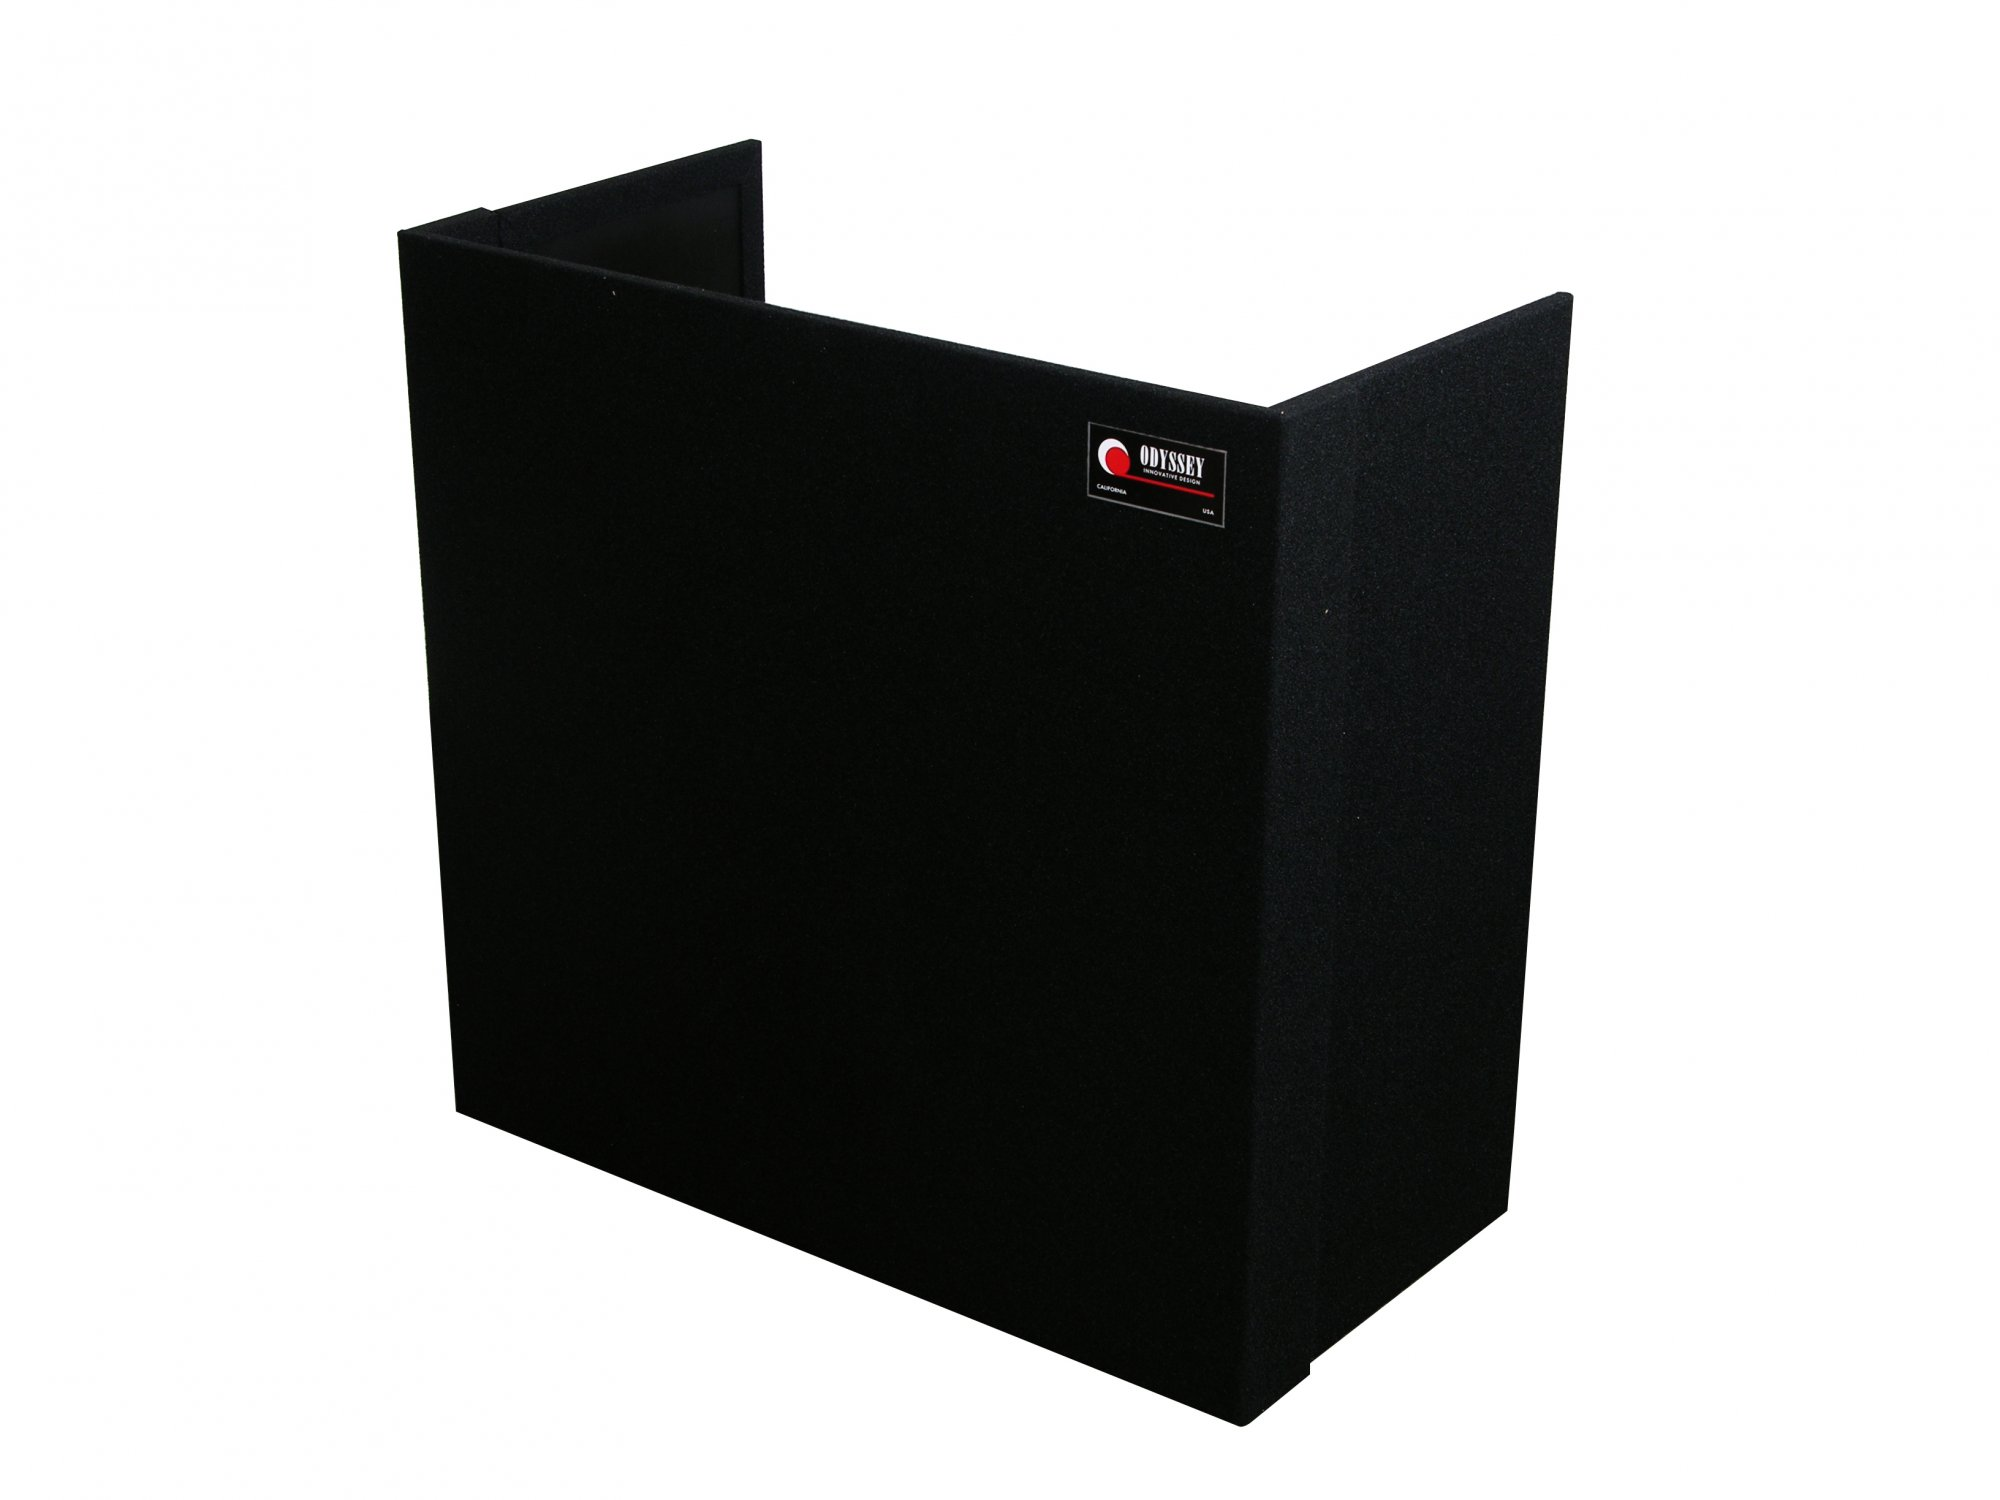 Odyssey Case CF3634 - Facade, Carpeted, Fold Out - 36 x 34